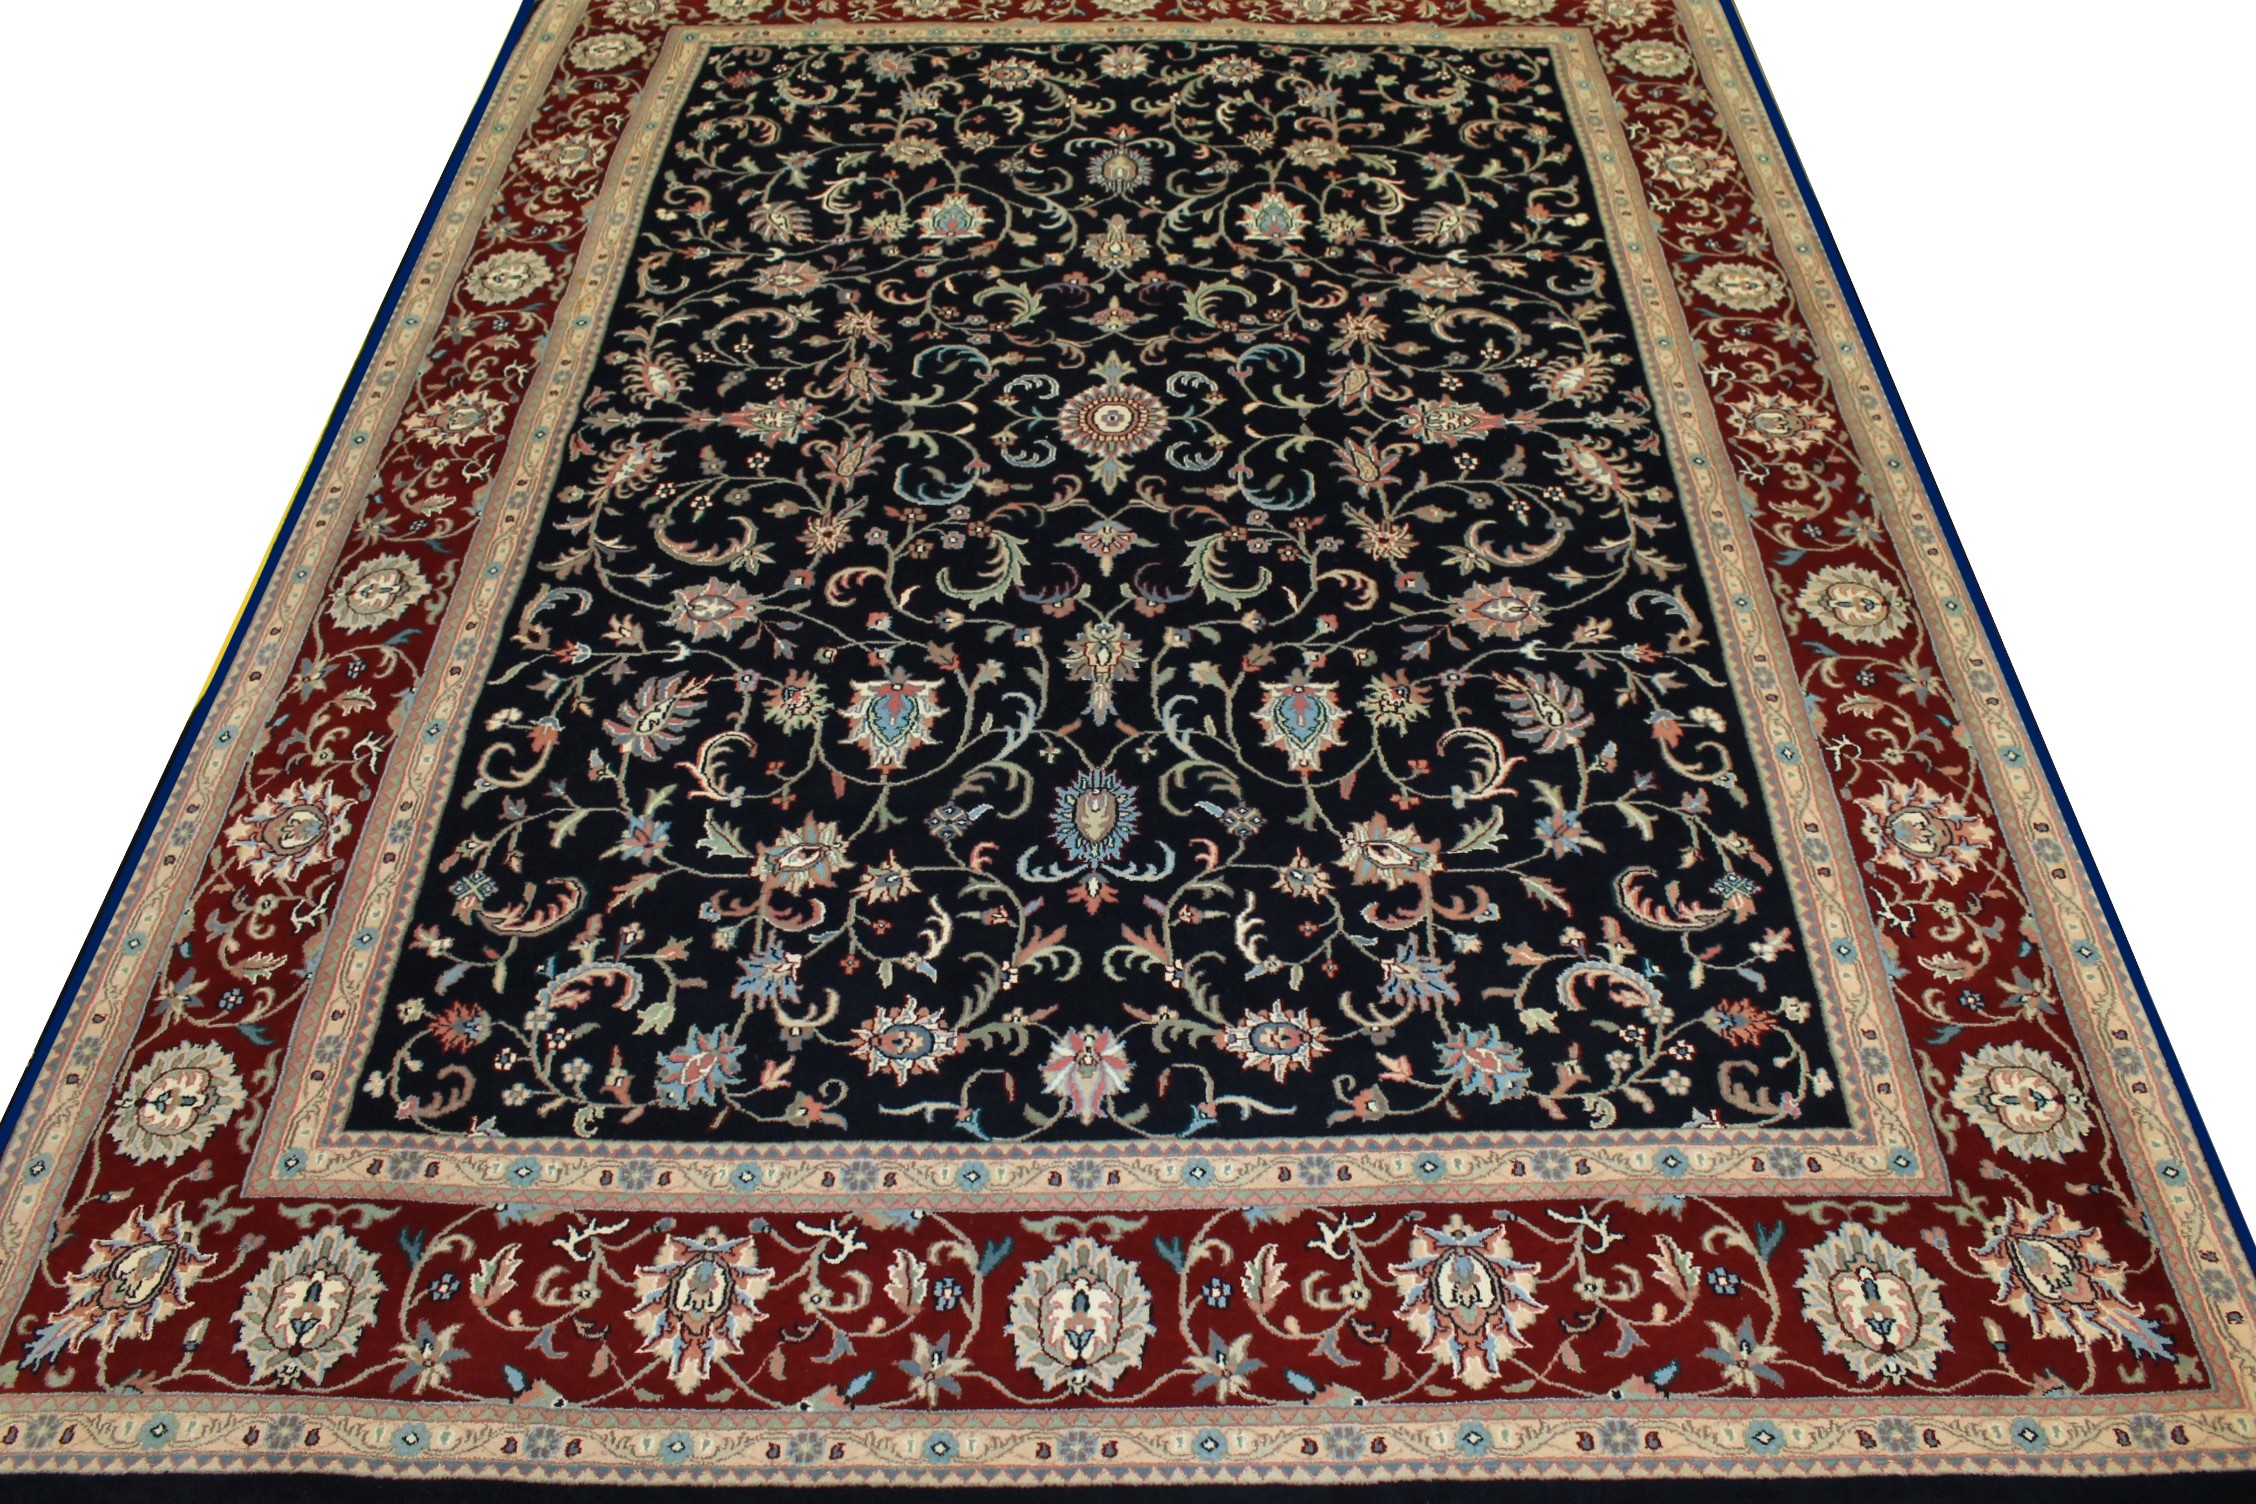 9x12 Traditional Hand Knotted Wool Area Rug - MR0238